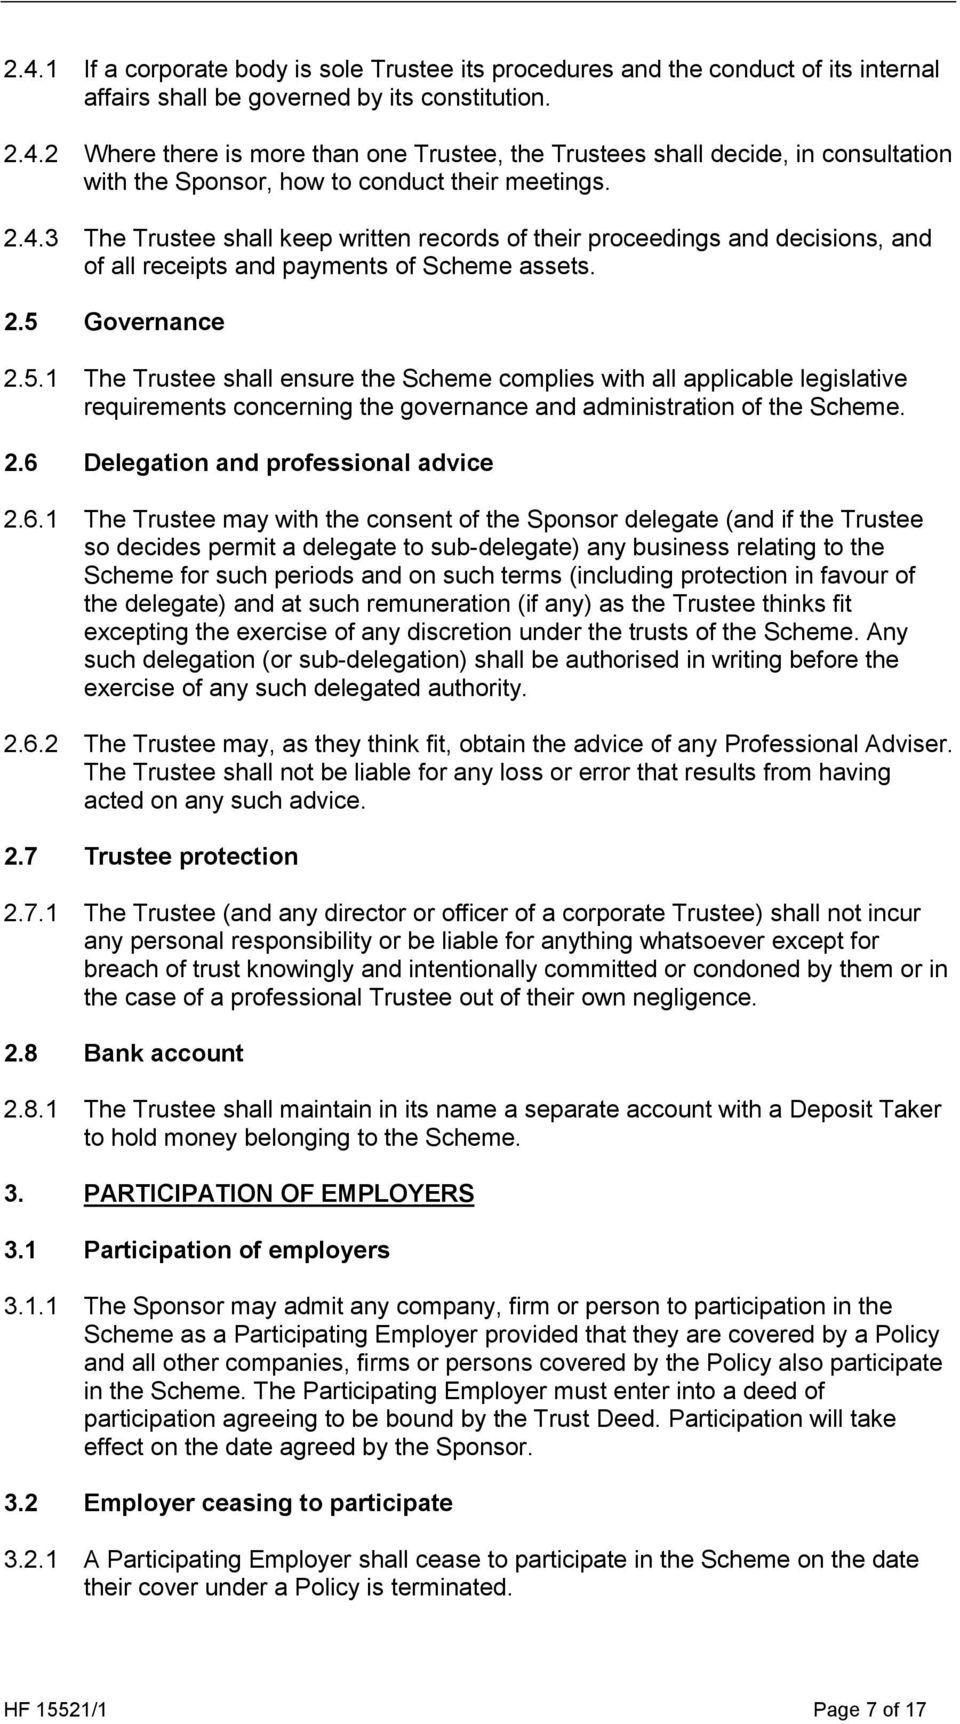 Governance 2.5.1 The Trustee shall ensure the Scheme complies with all applicable legislative requirements concerning the governance and administration of the Scheme. 2.6 Delegation and professional advice 2.